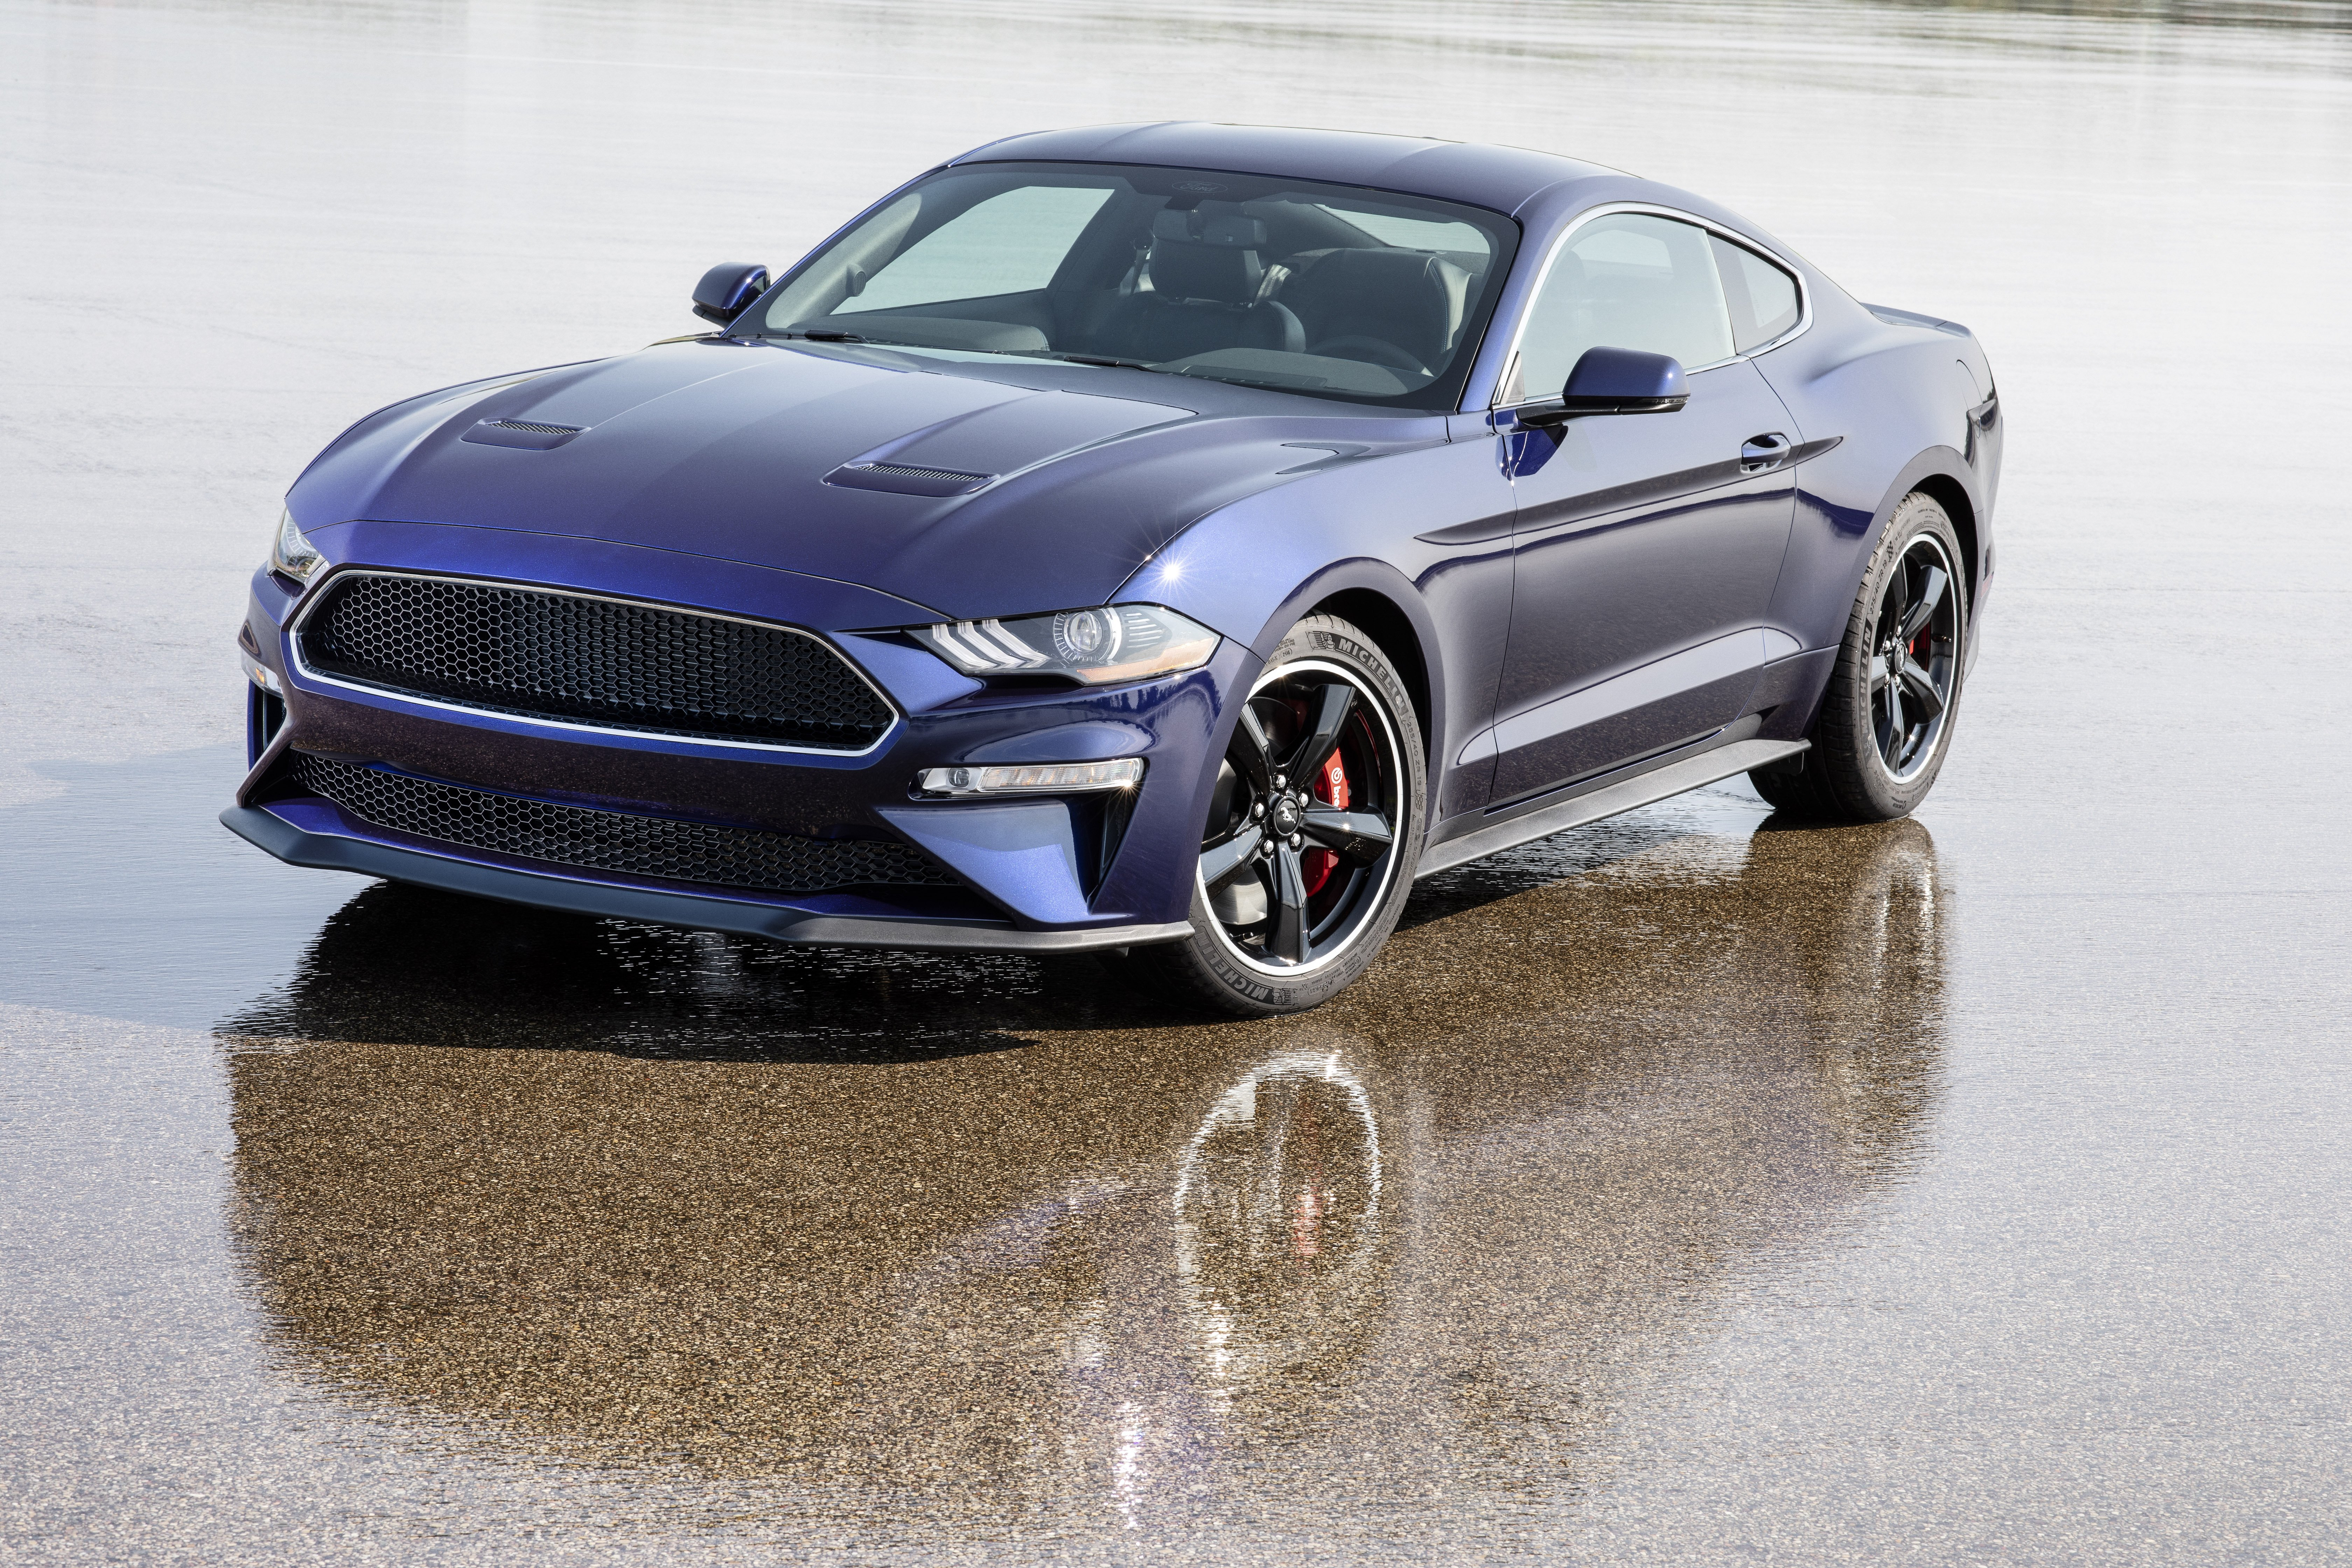 Gallery: Ford Builds a Blue Bullitt But it's for a Good Cause